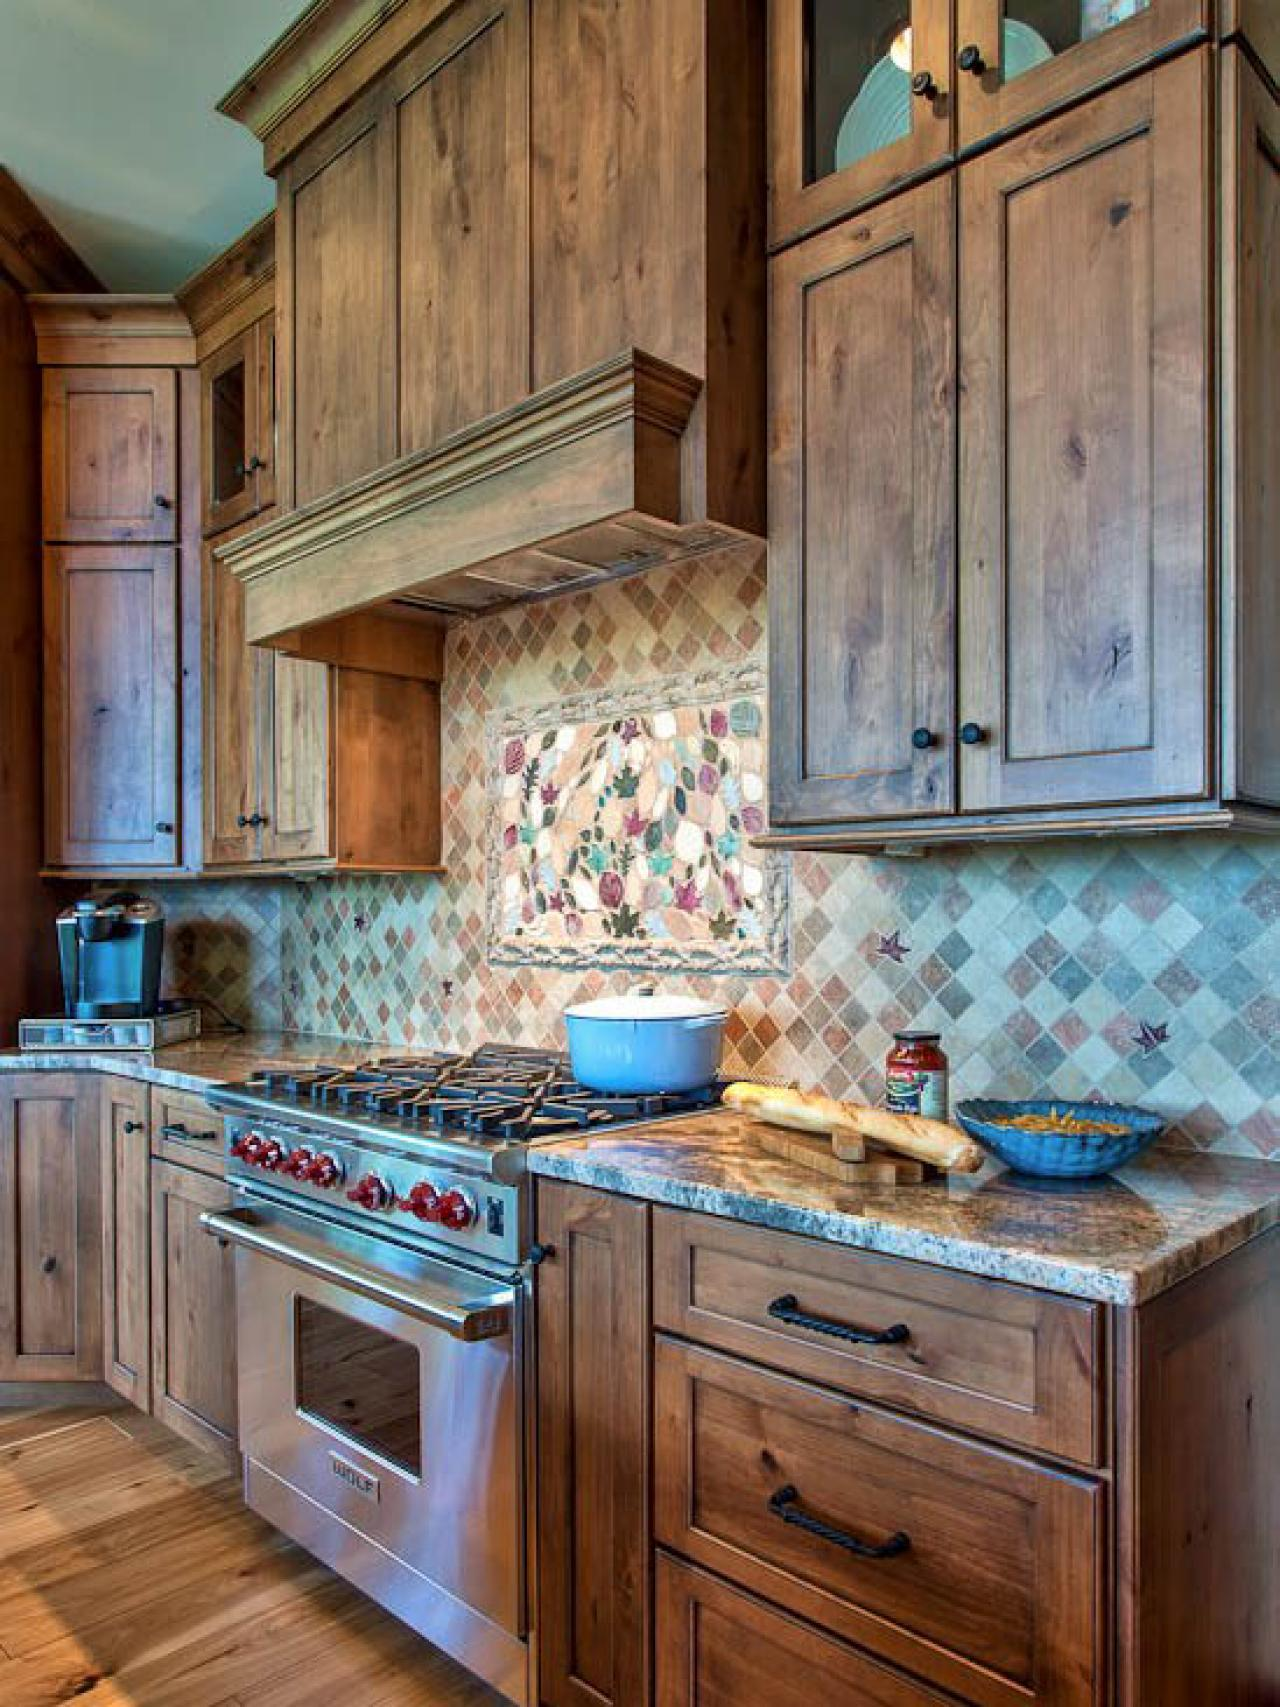 rs heather guss rustic kitchen backsplash